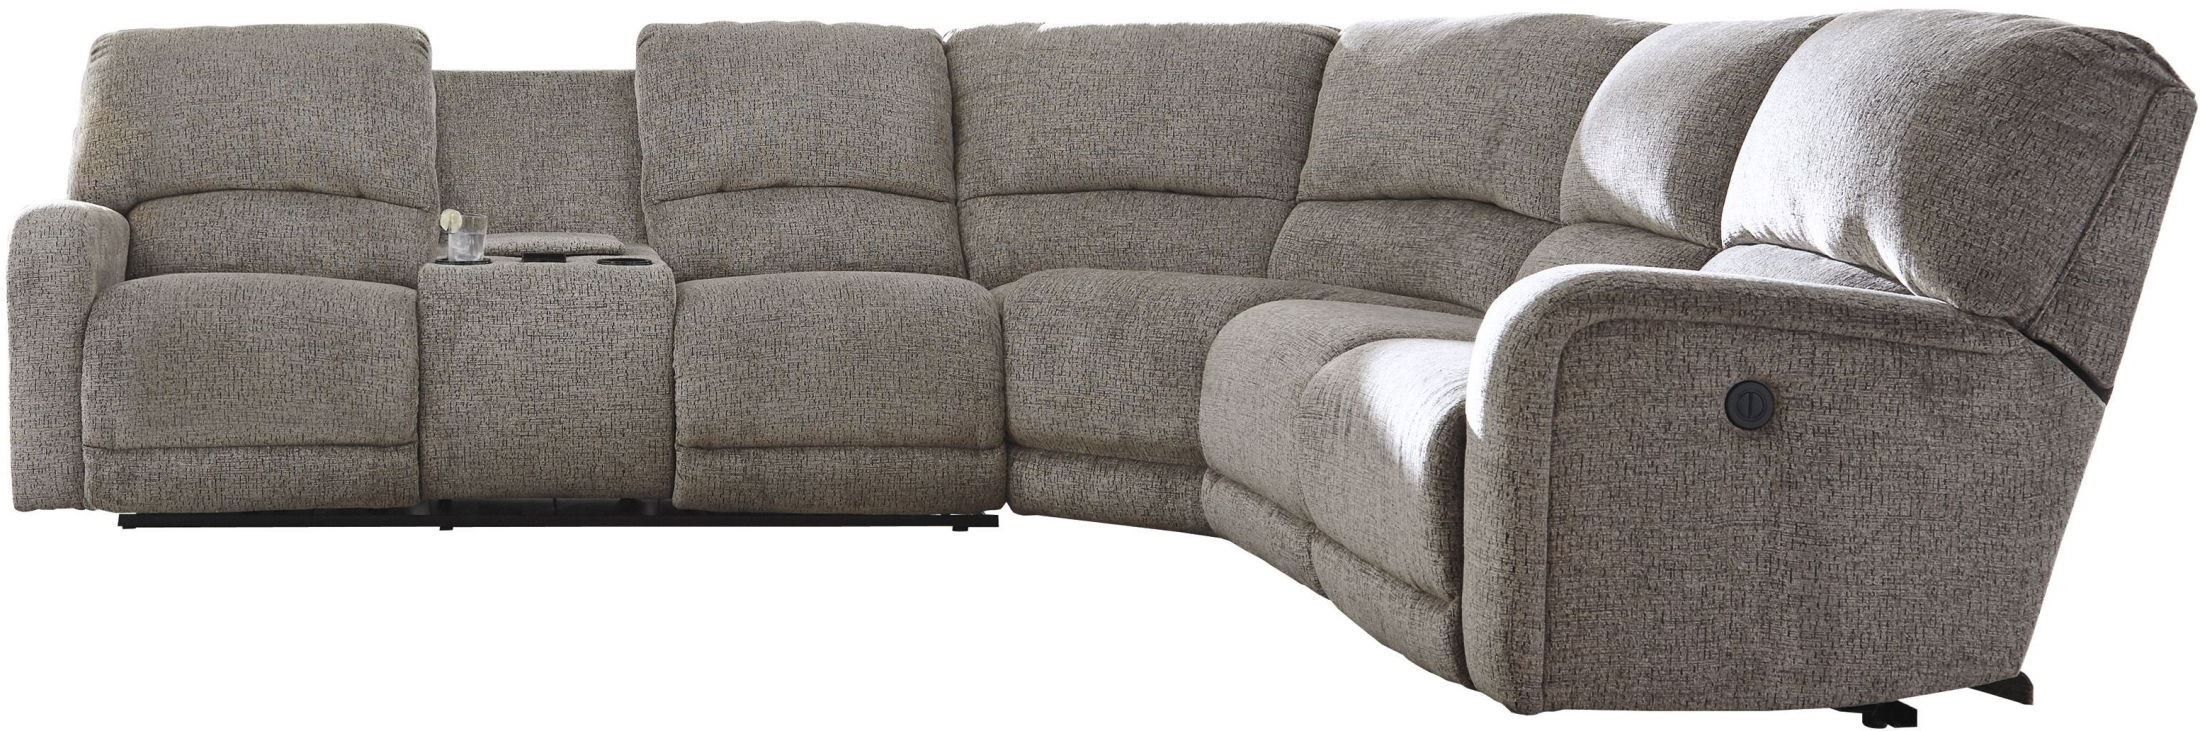 Signature Designashley Pittsfield Fossil Raf Power Reclining Inside Tess 2 Piece Power Reclining Sectionals With Laf Chaise (Image 16 of 25)